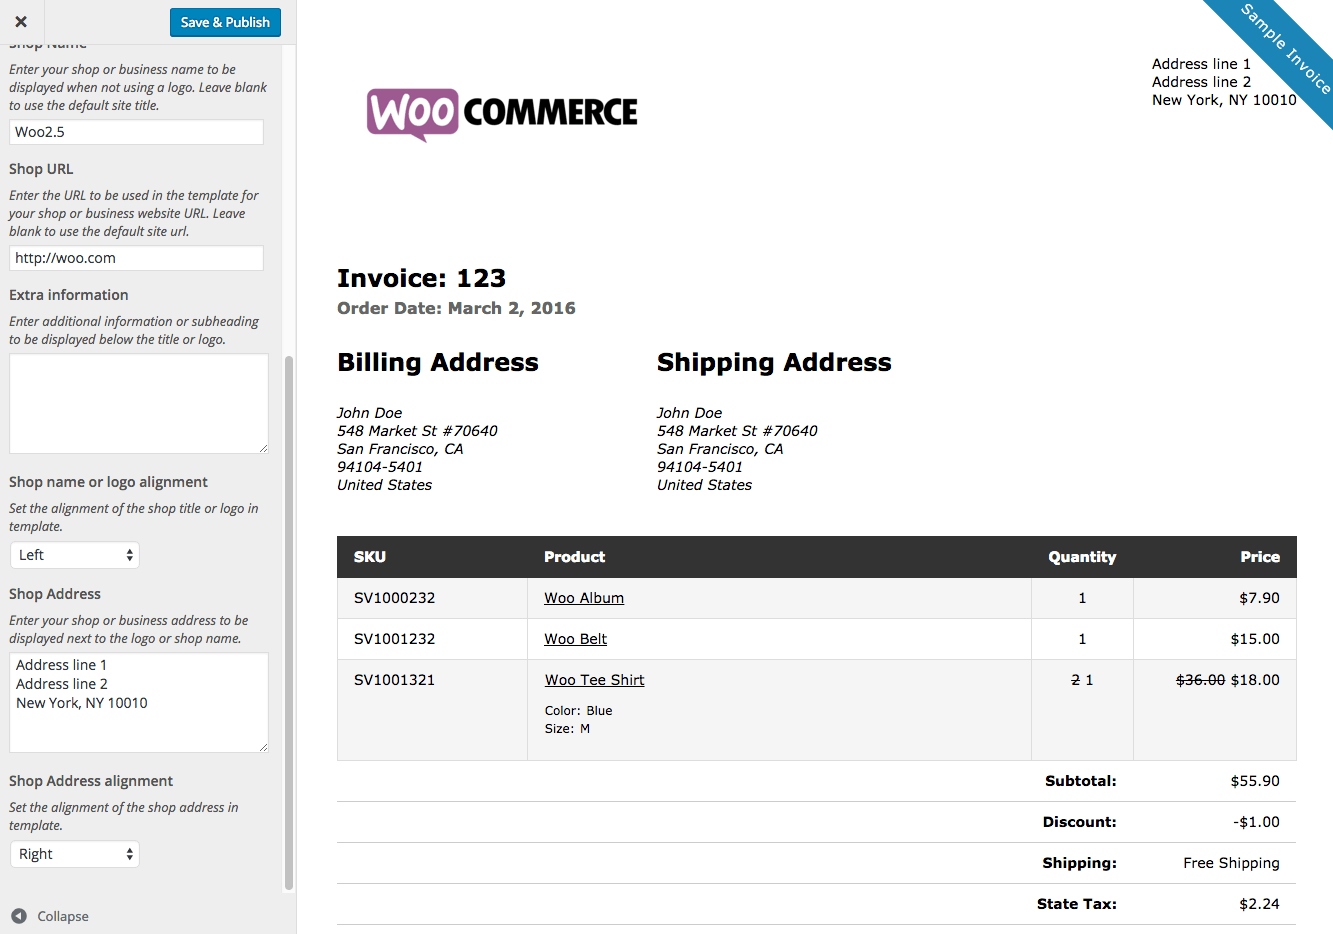 Carsforlessus  Pleasing Woocommerce Print Invoices Amp Packing Lists  Woocommerce Docs With Entrancing Woocommerce Print Invoices  Packing Lists Customizer With Astonishing Final Invoice Also Invoice Pdf In Addition E Invoice And Blank Invoice Template Pdf As Well As Aynax Invoice Additionally Msrp Vs Invoice From Docswoocommercecom With Carsforlessus  Entrancing Woocommerce Print Invoices Amp Packing Lists  Woocommerce Docs With Astonishing Woocommerce Print Invoices  Packing Lists Customizer And Pleasing Final Invoice Also Invoice Pdf In Addition E Invoice From Docswoocommercecom